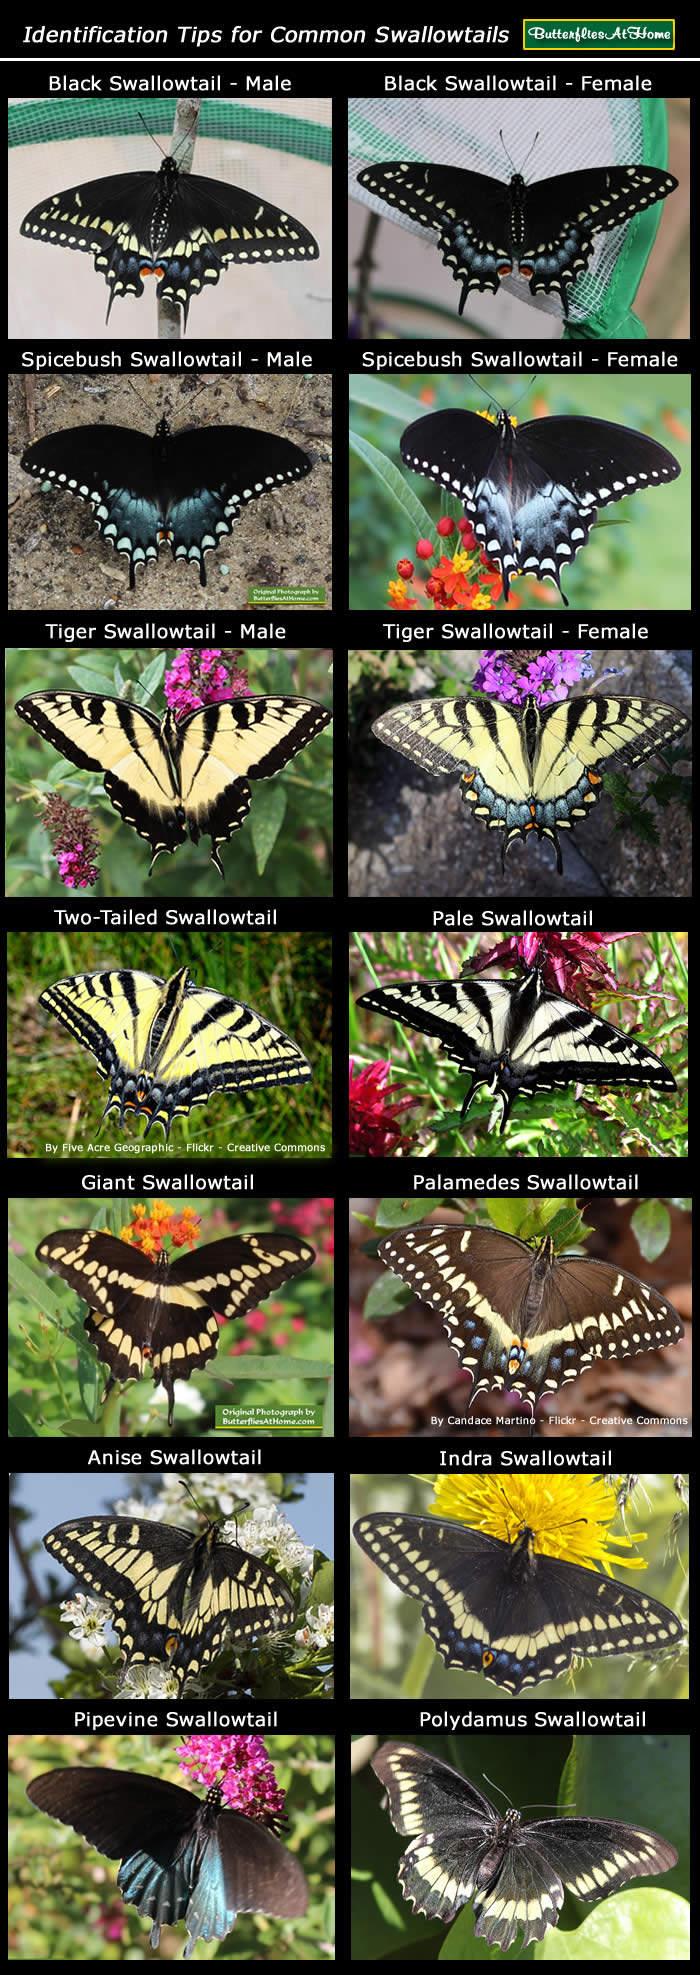 click for identification tips for swallowtail butterflies